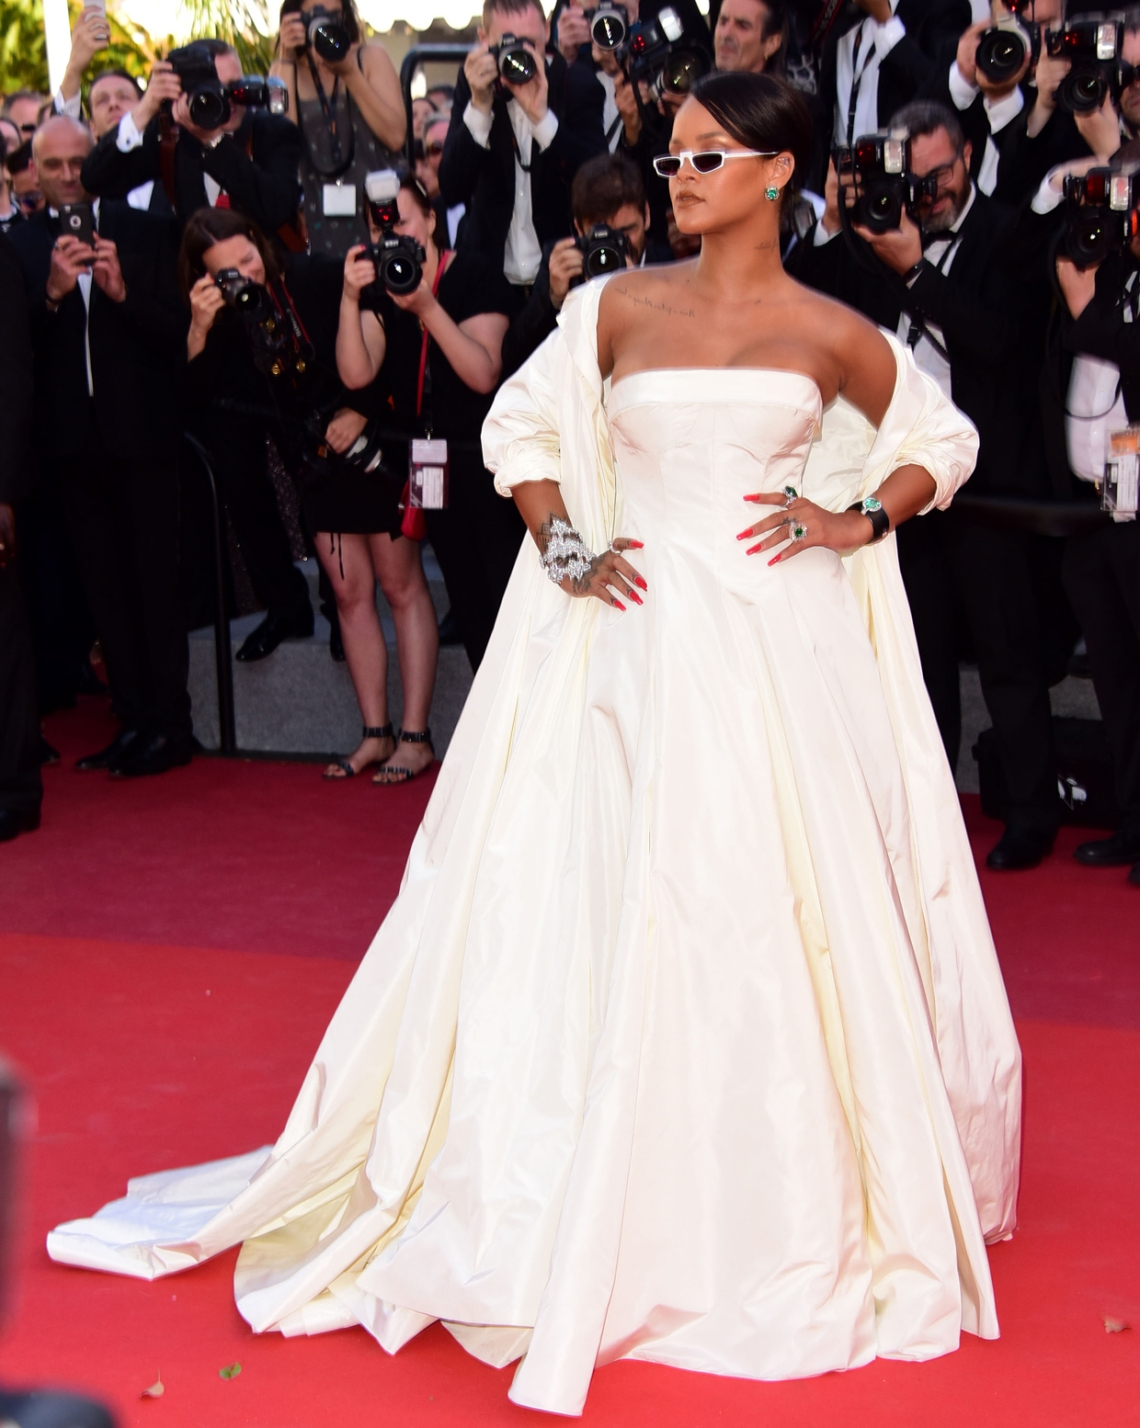 02-Rihanna-cannes-best-looks-2017-billboard-1240